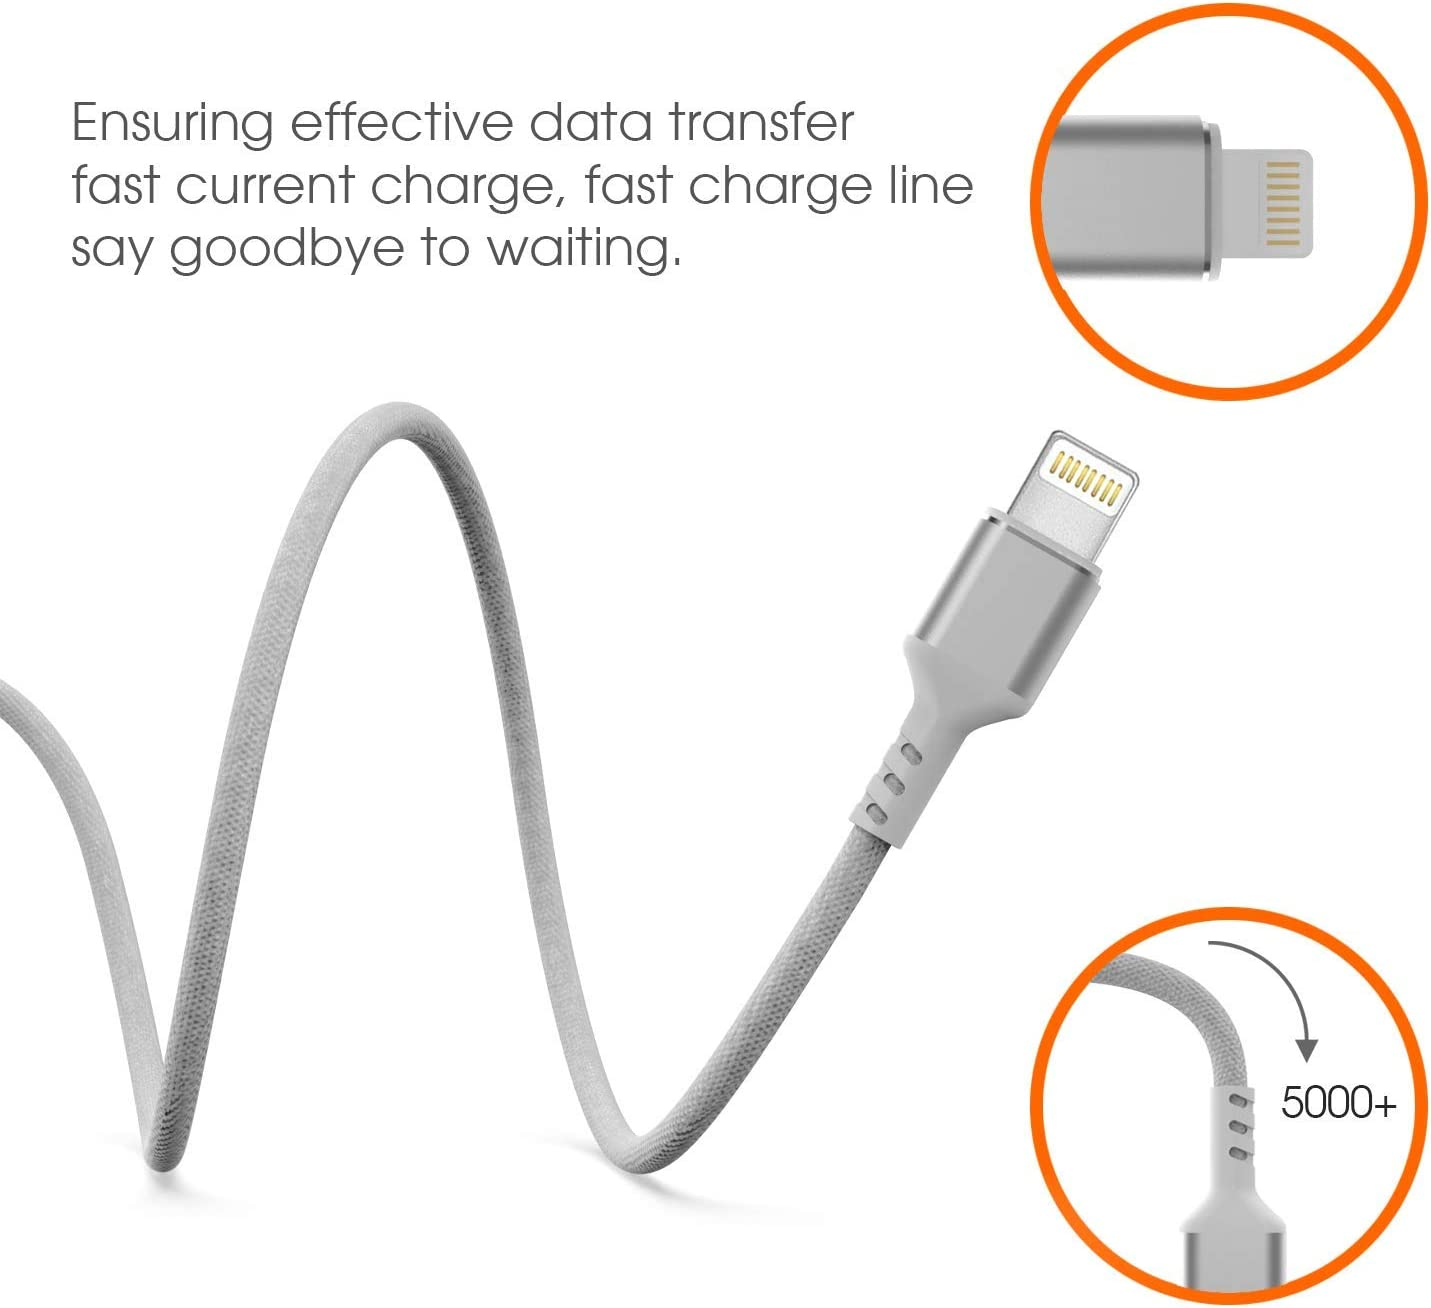 Fabric Nylon Braided Extra Long Fast Charging Cord Boost+ Chargers 3-Pack, Blue Aluminum Alloy Connector Upgraded Data Sync Cable USB Powered